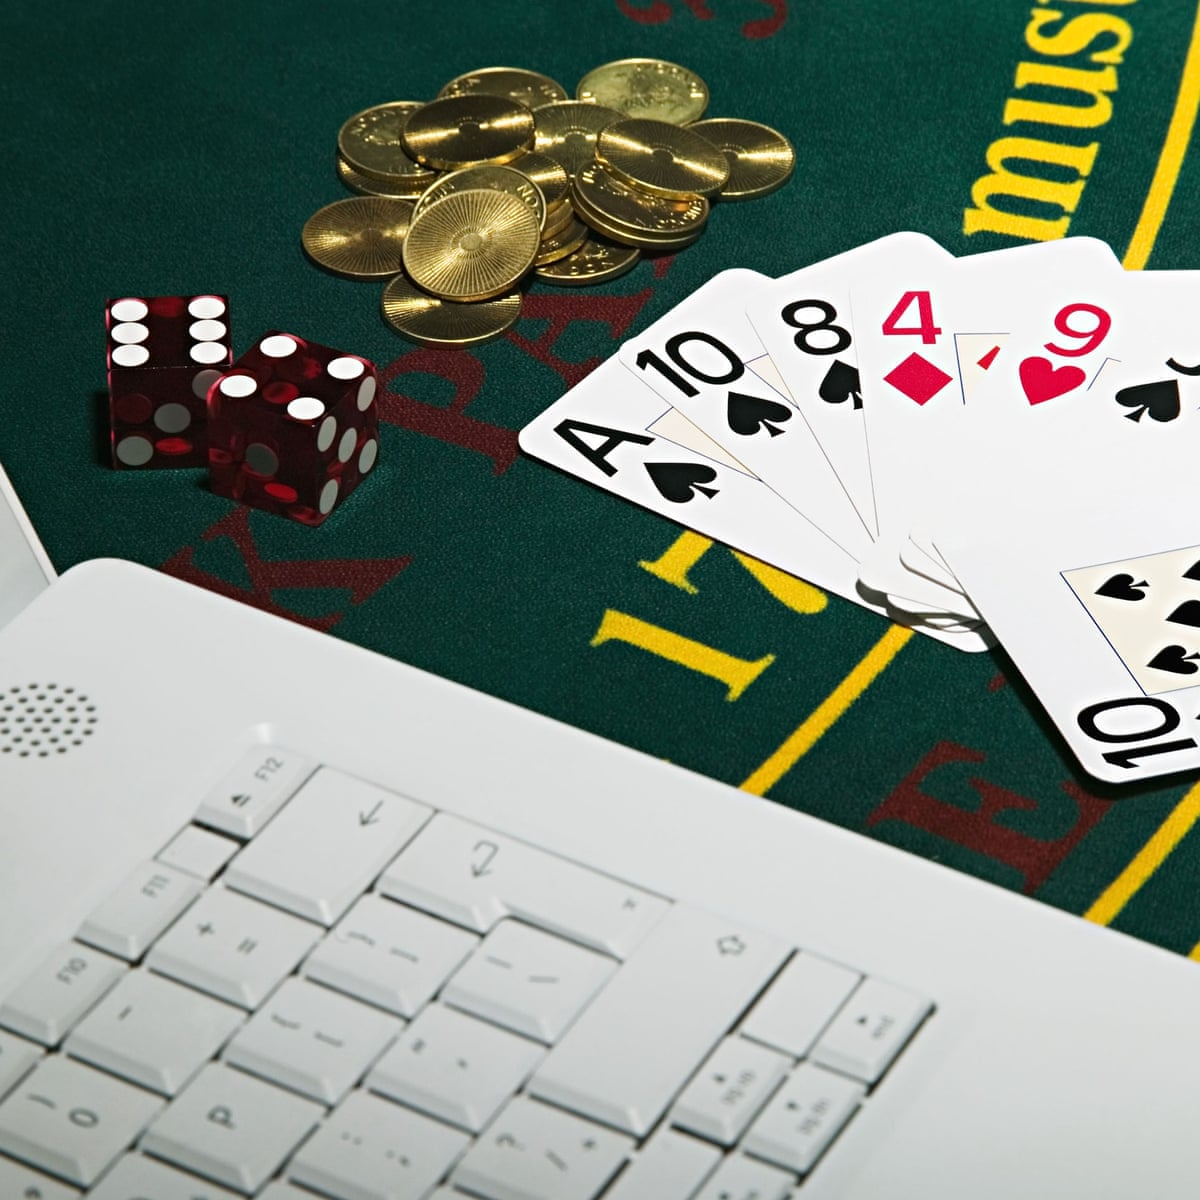 Online gambling firms face clampdown after watchdog's probe | Society | The  Guardian